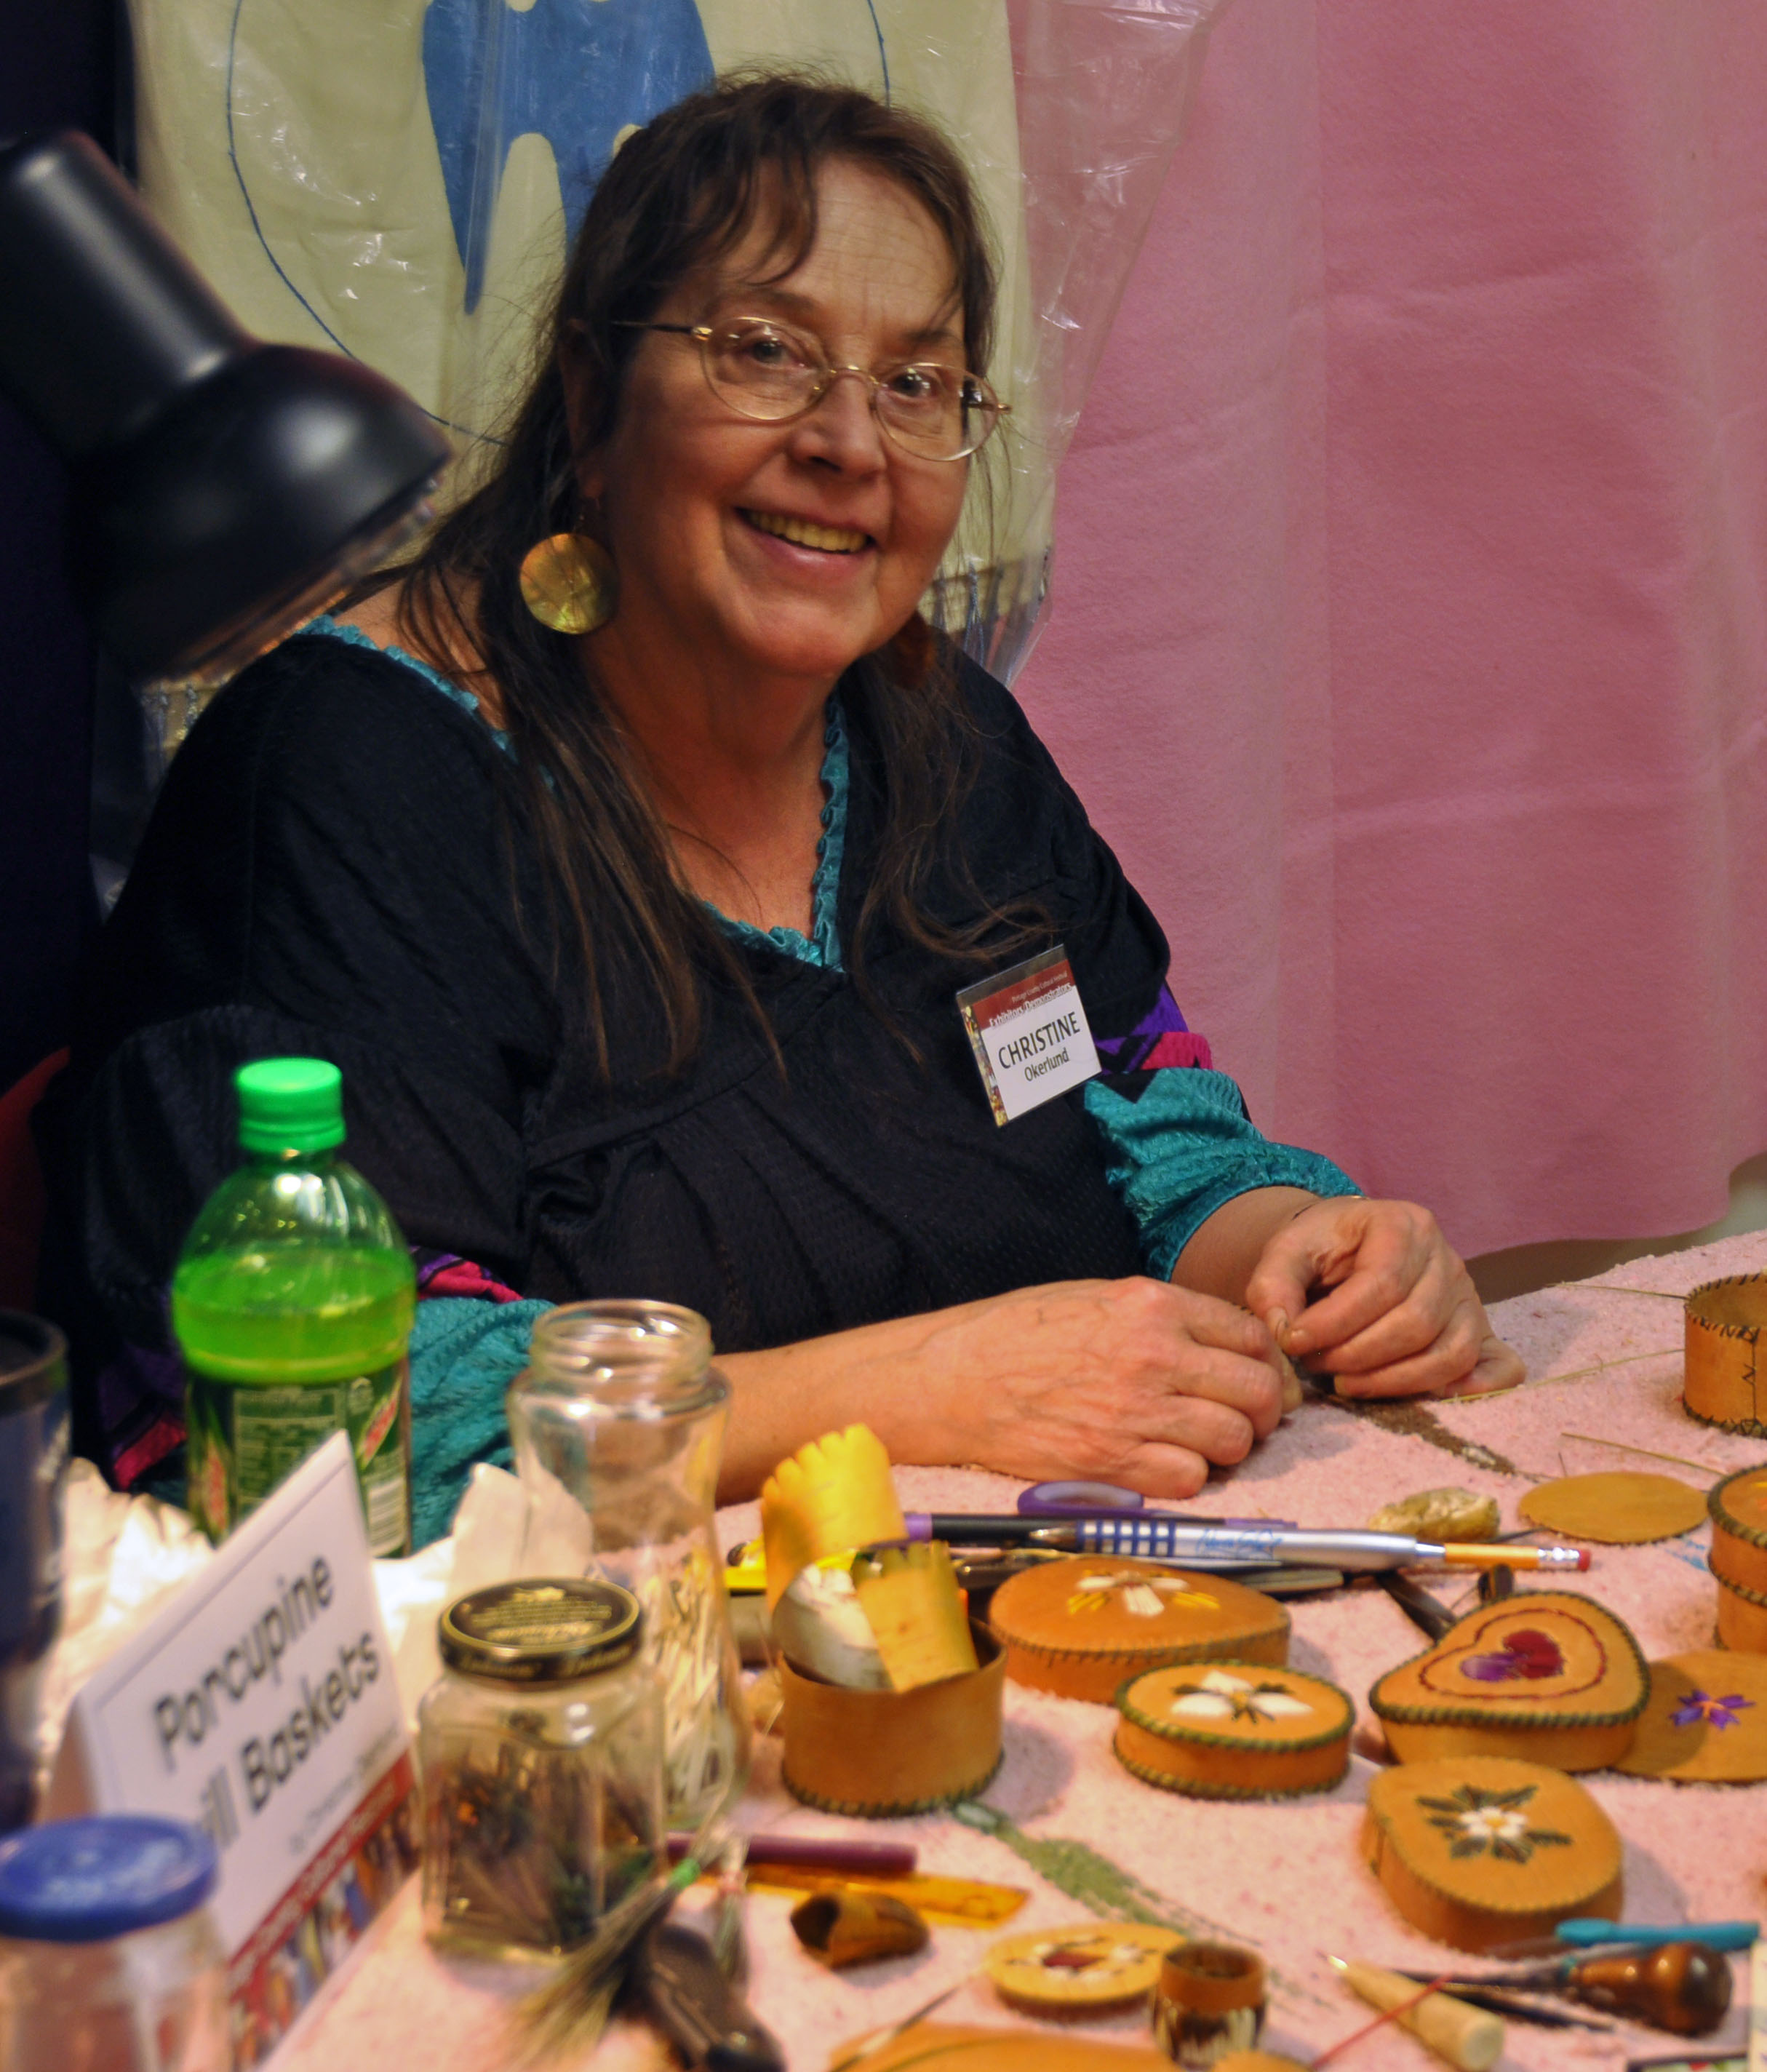 Christine Okerlund of Wittenberg makes birchbark baskets decorated with quill embroidery.